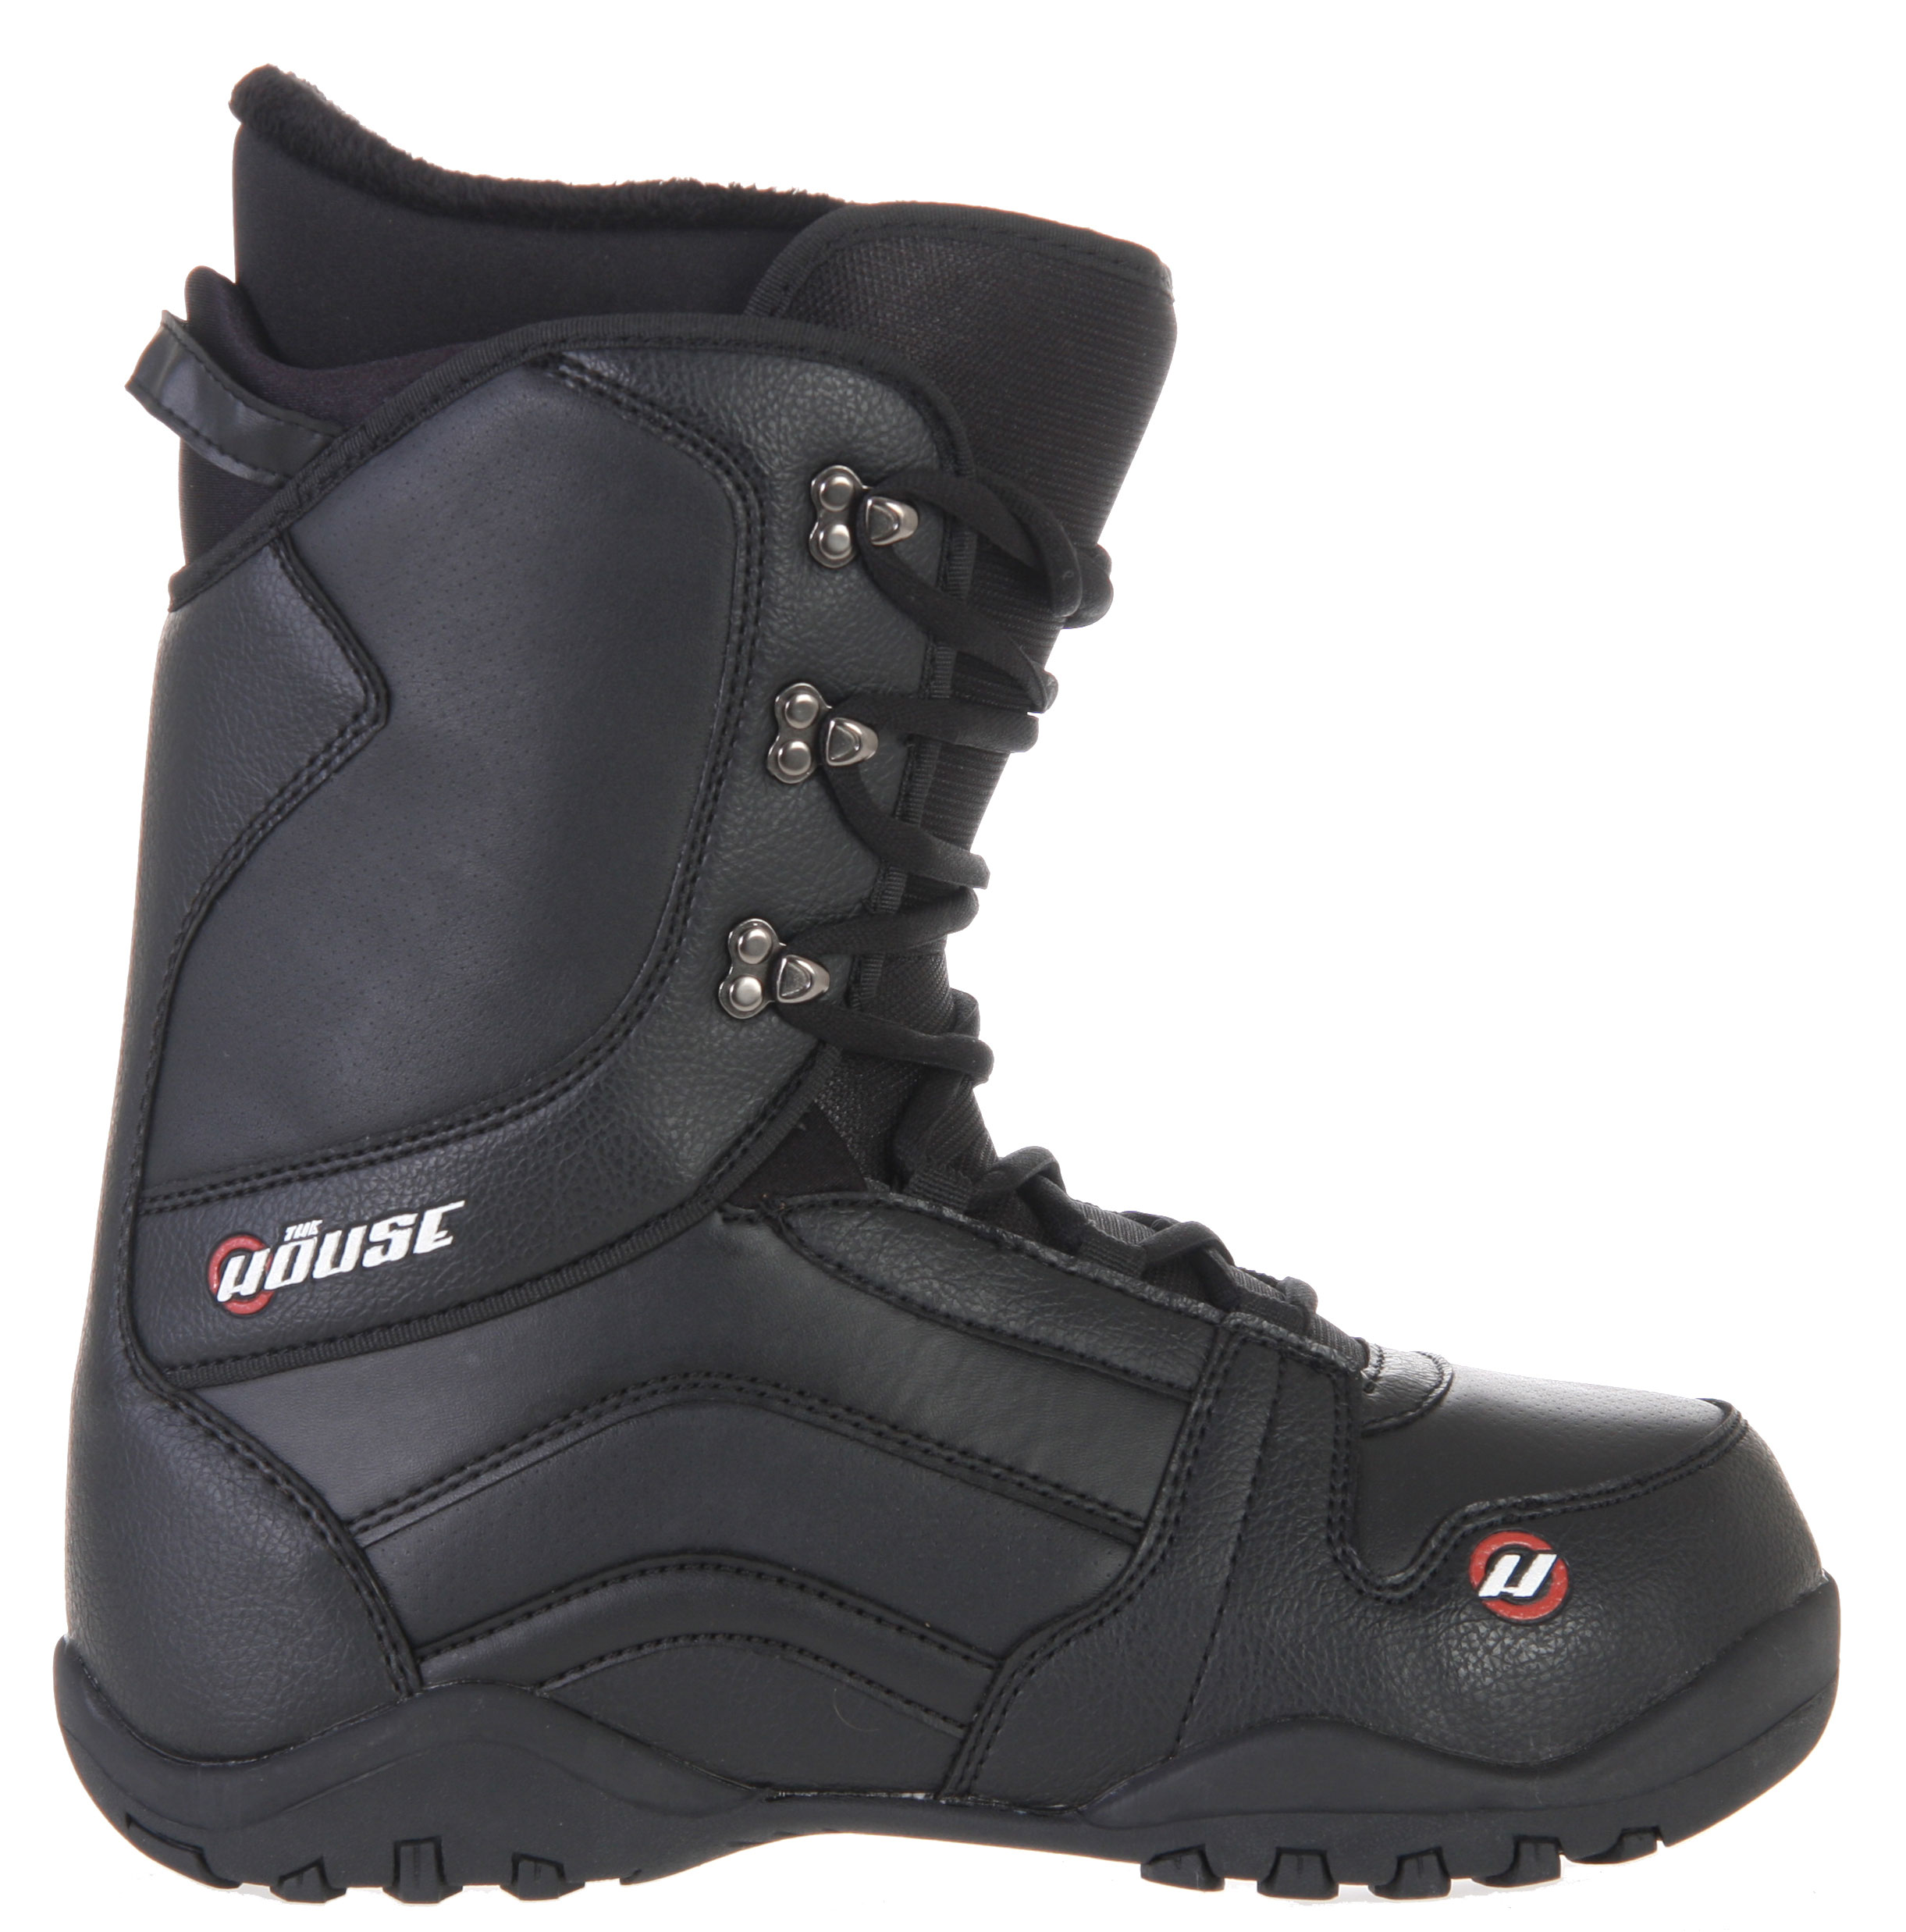 Snowboard The House Transition Snowboard BootsKey Features of the House Transition Snowboard Boots: Deluxe lace up liner Speed lace system Molded TPR backstay Phylon and rubber 2 piece sole - $71.95